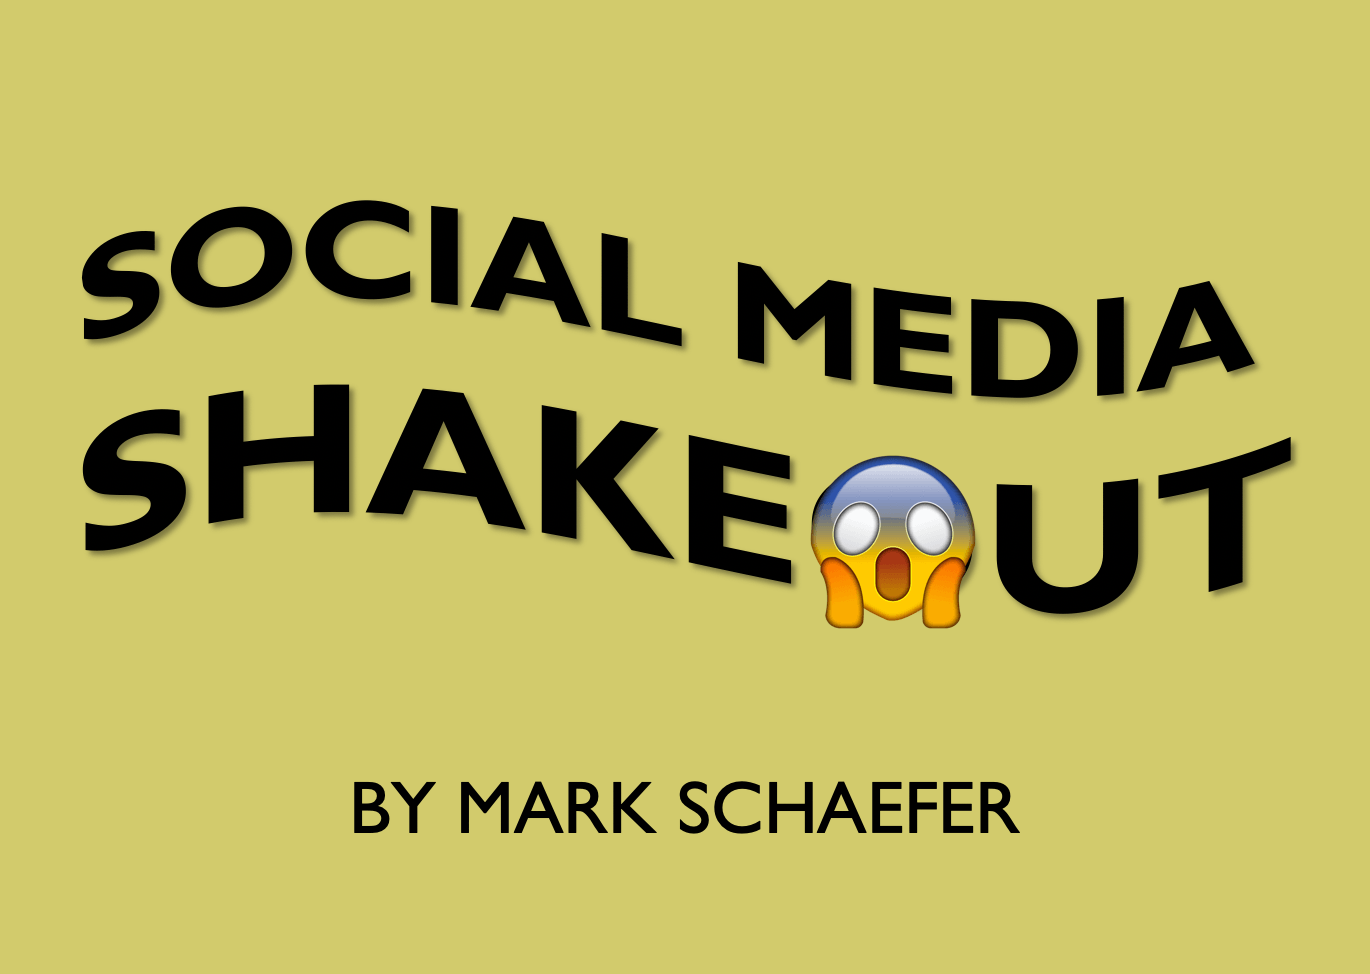 Social media shakeout: Why the future of social media is hazy